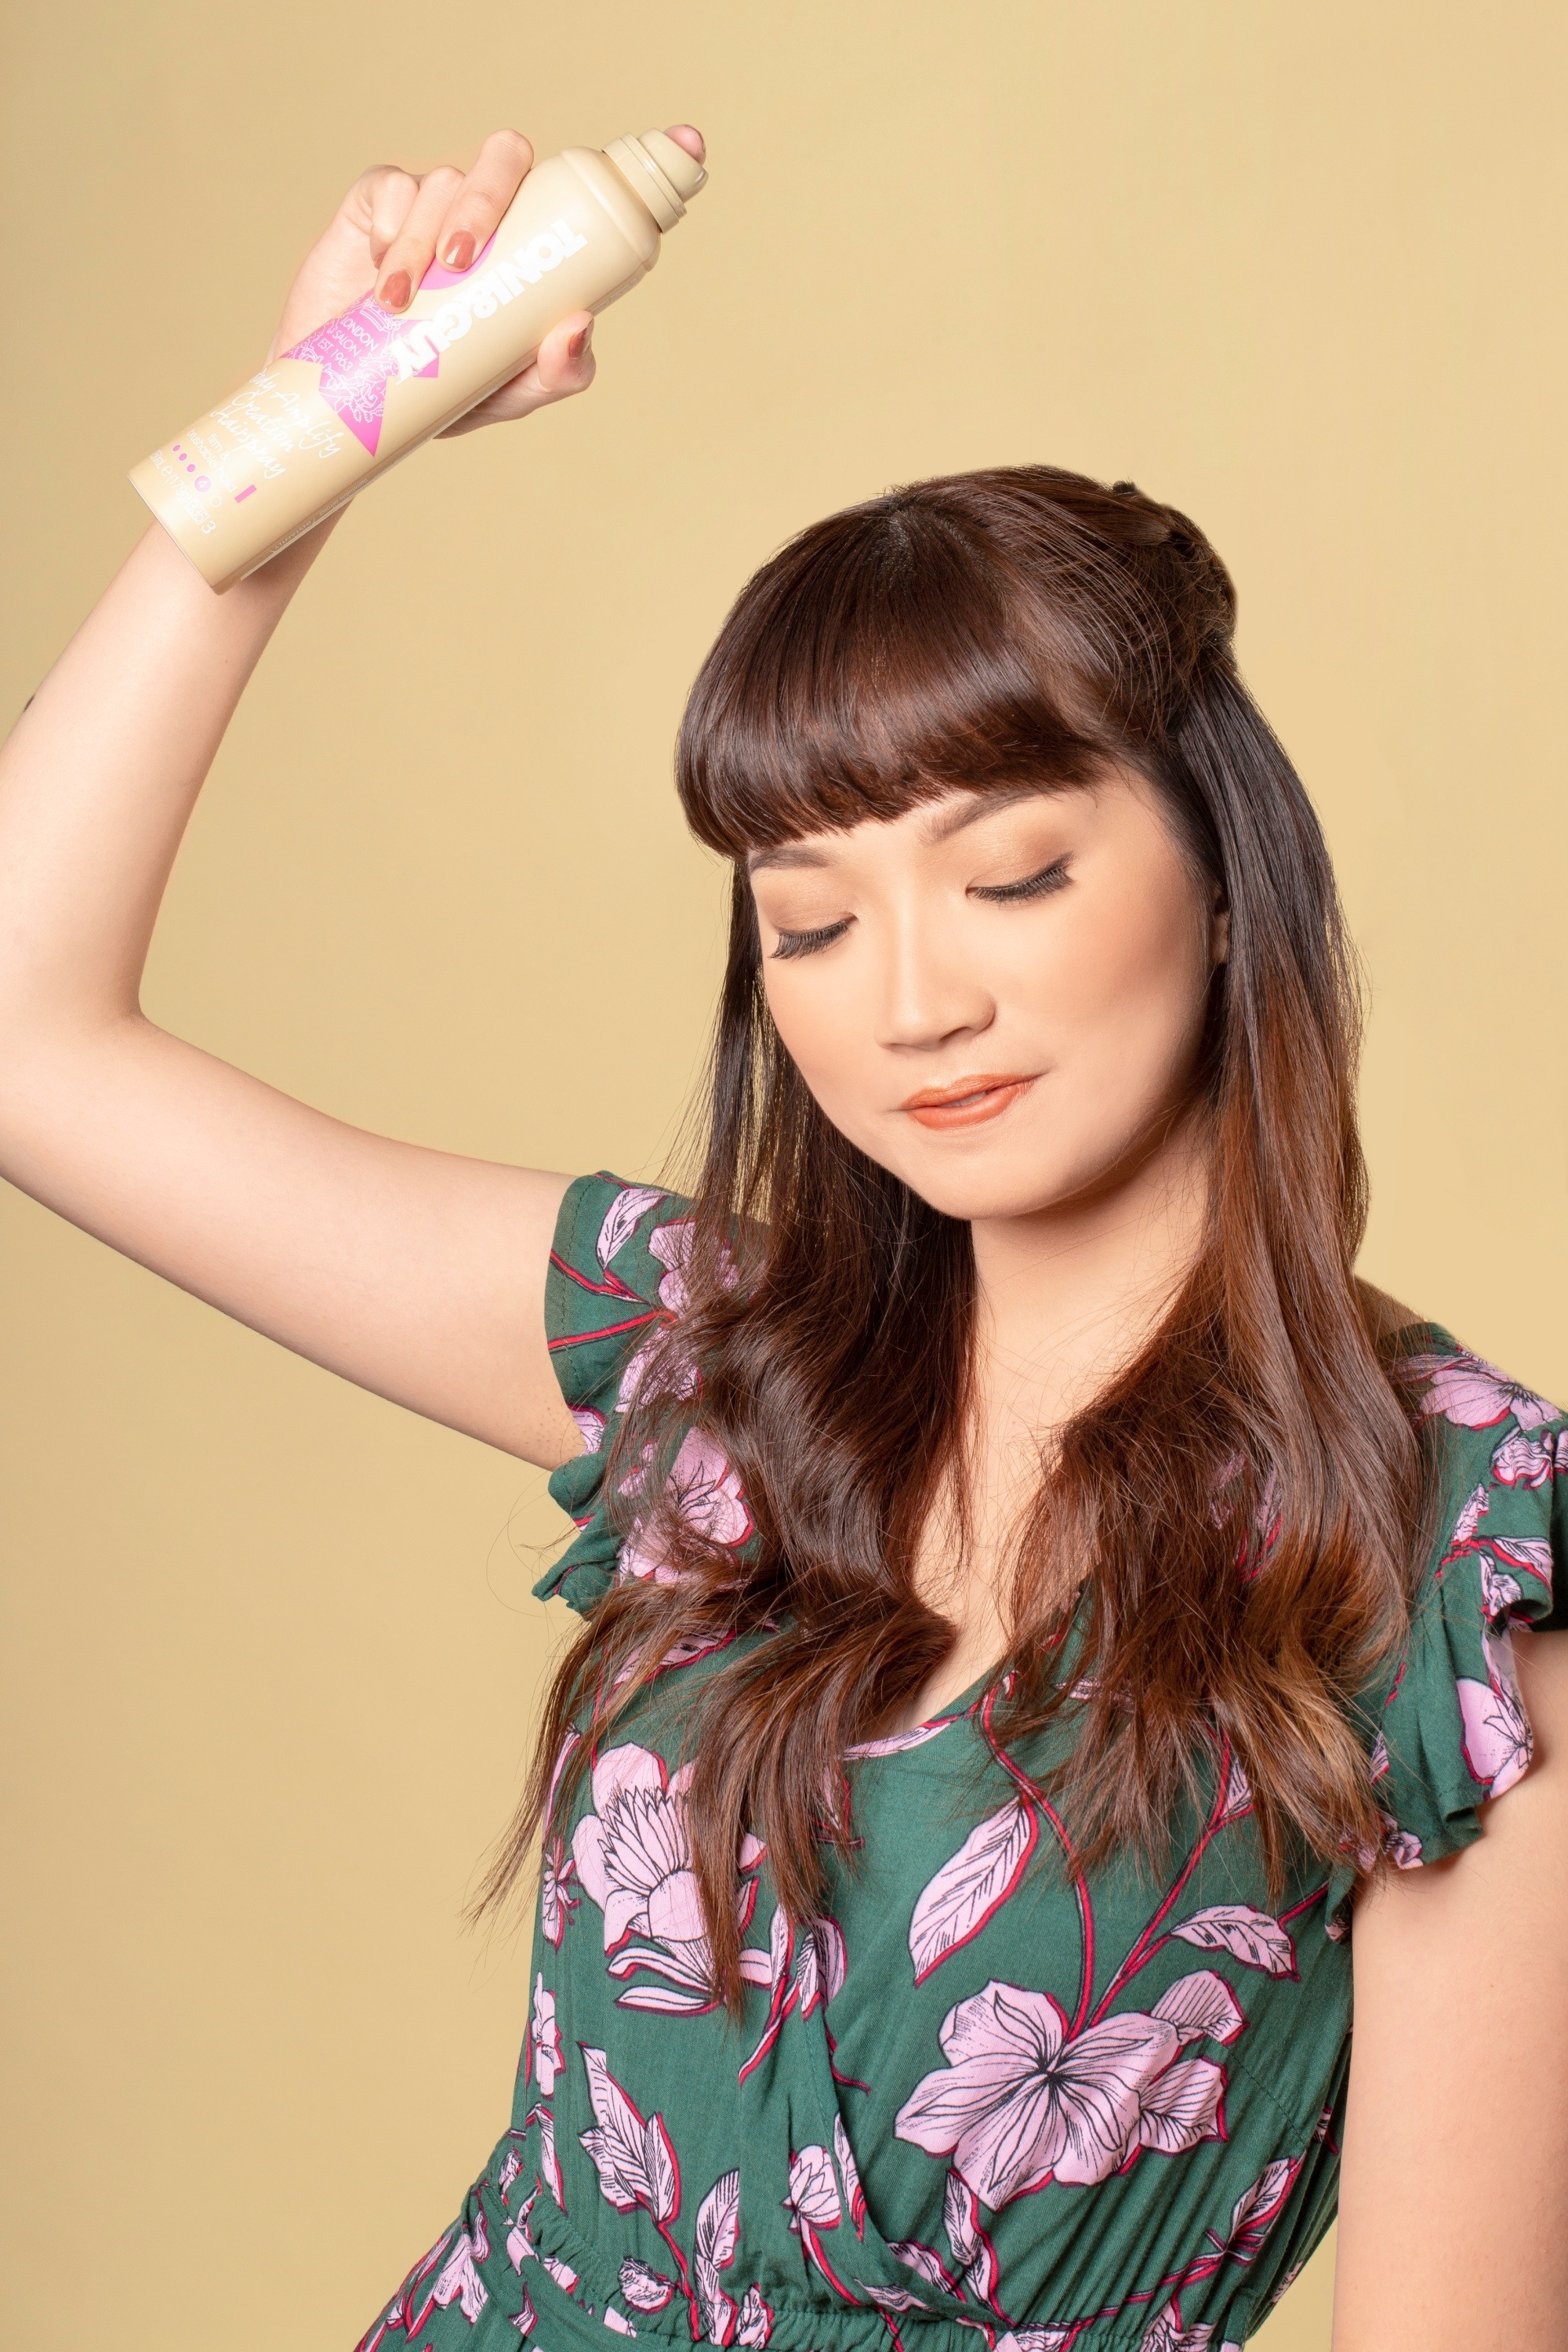 Hair spray guide: Asian woman spraying on her long hair